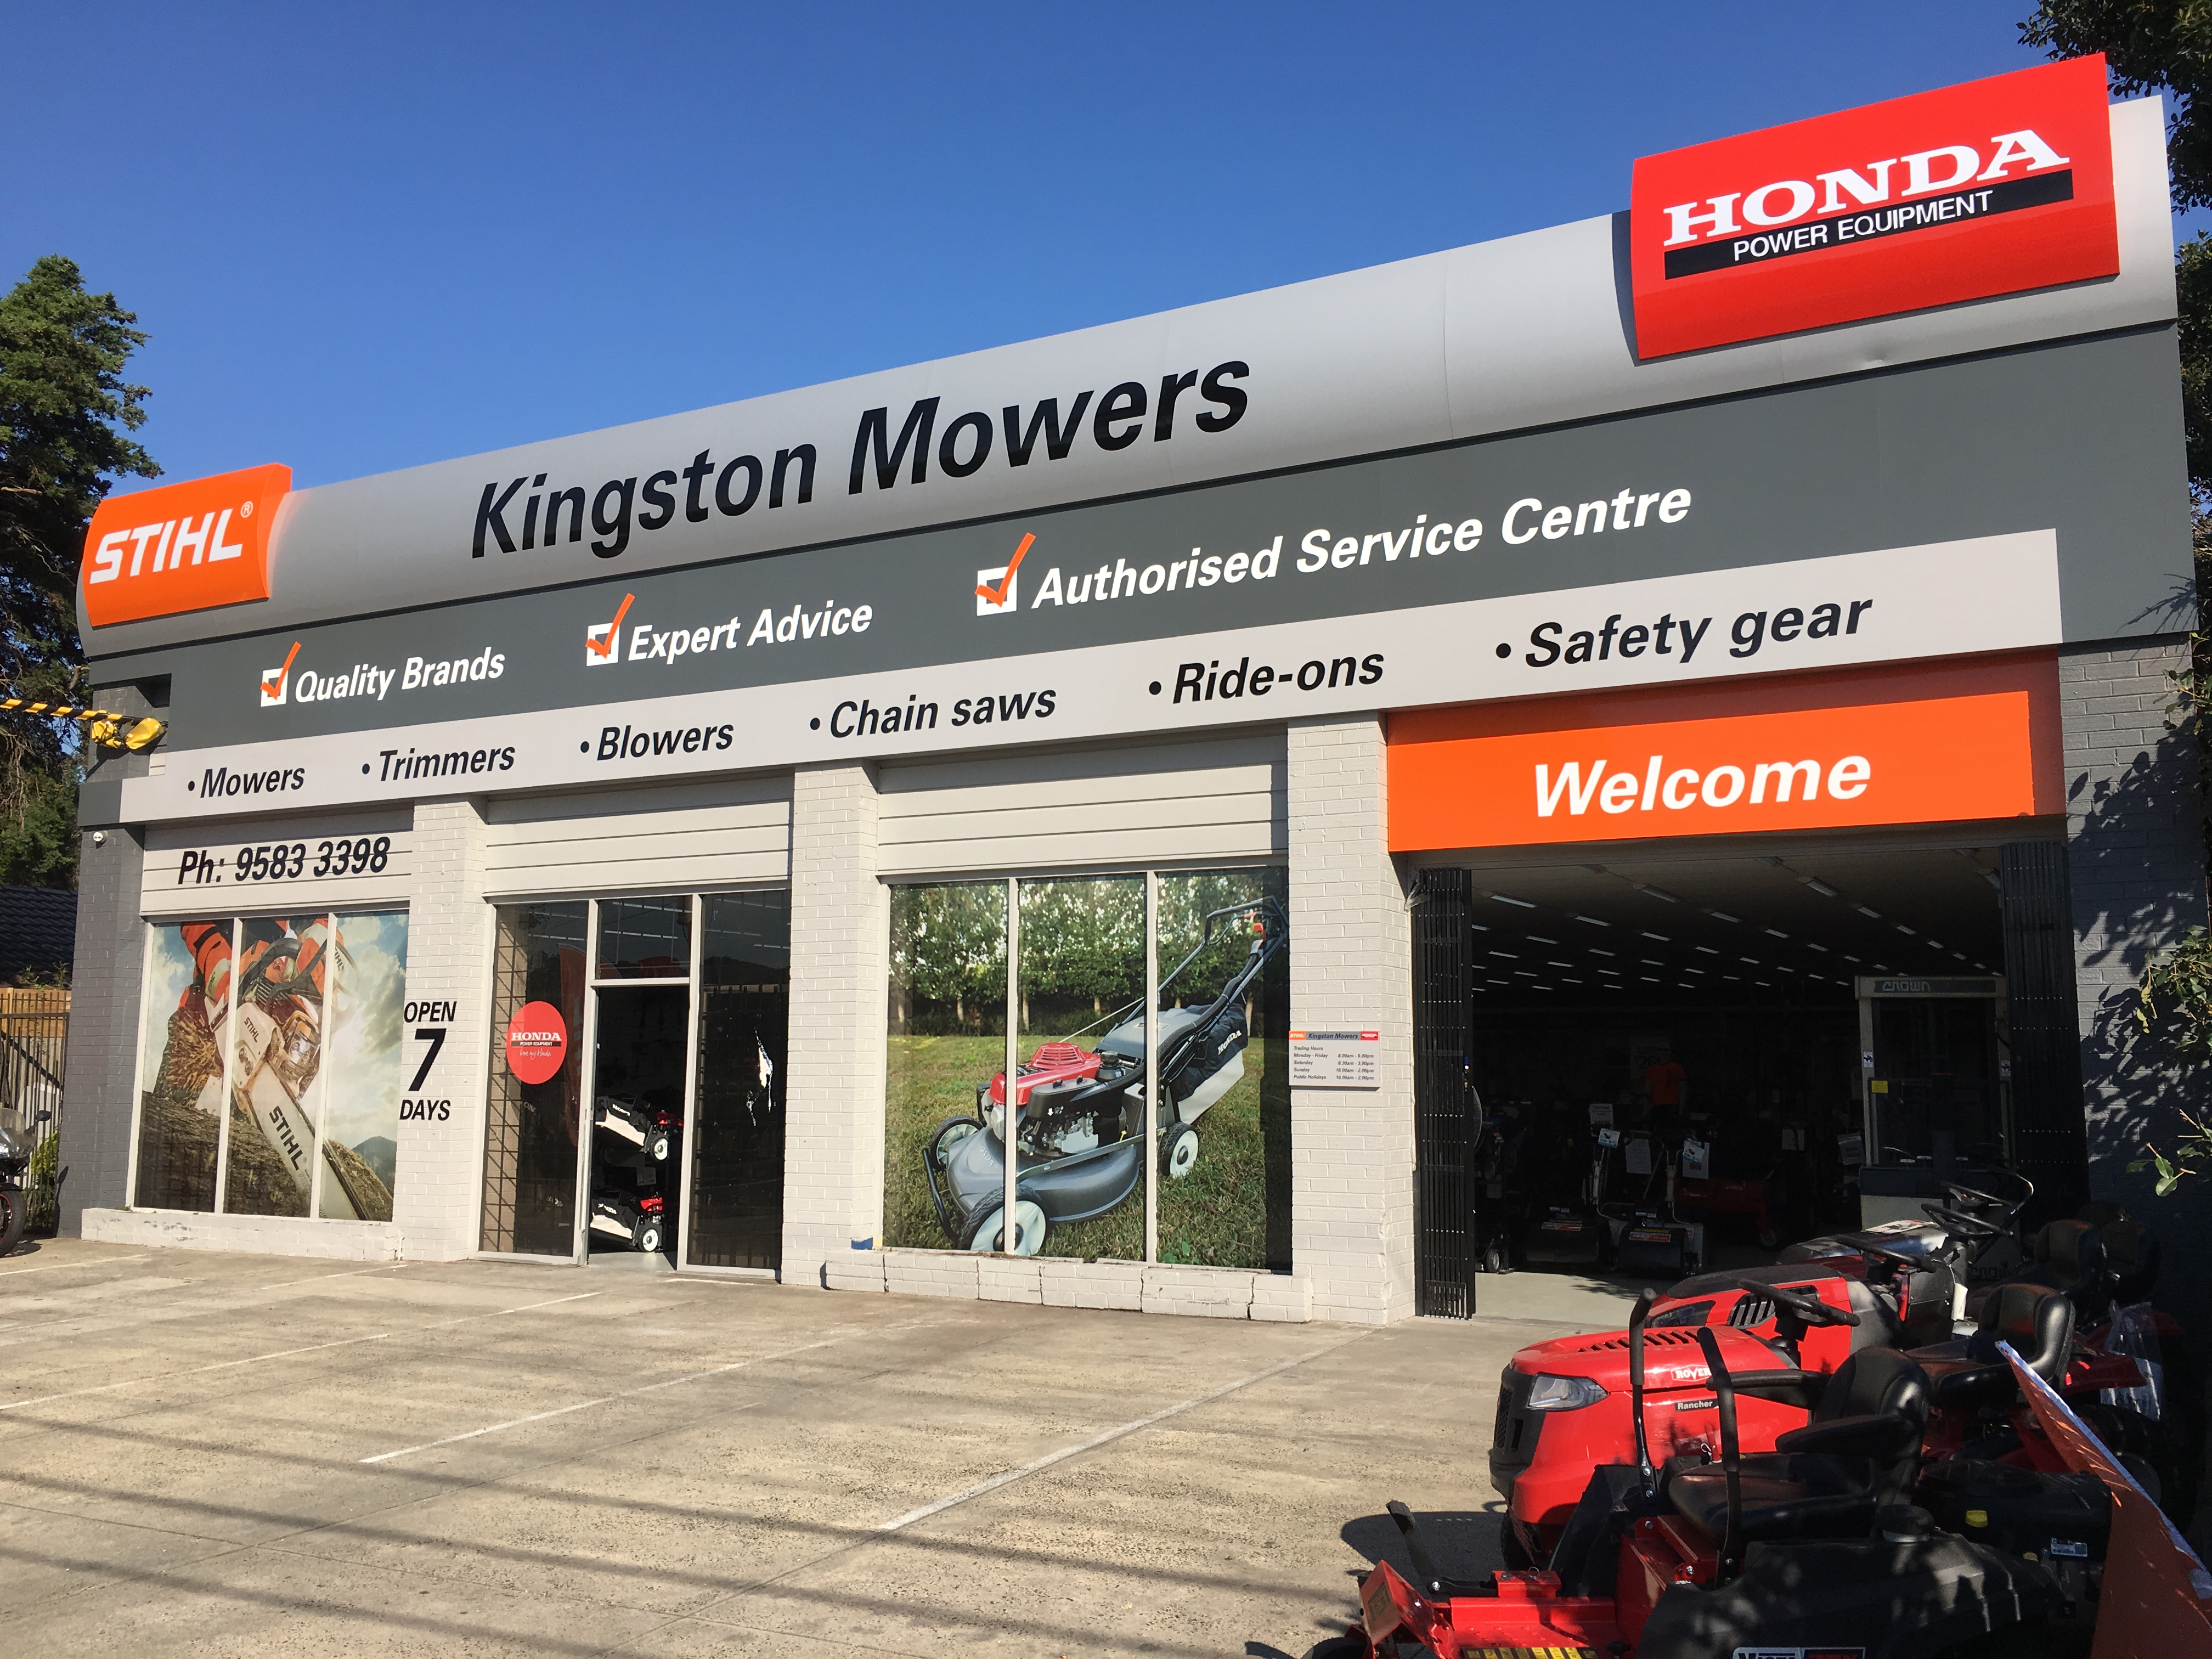 Kingston%20Mowers%20outdoor%20photo.jpg